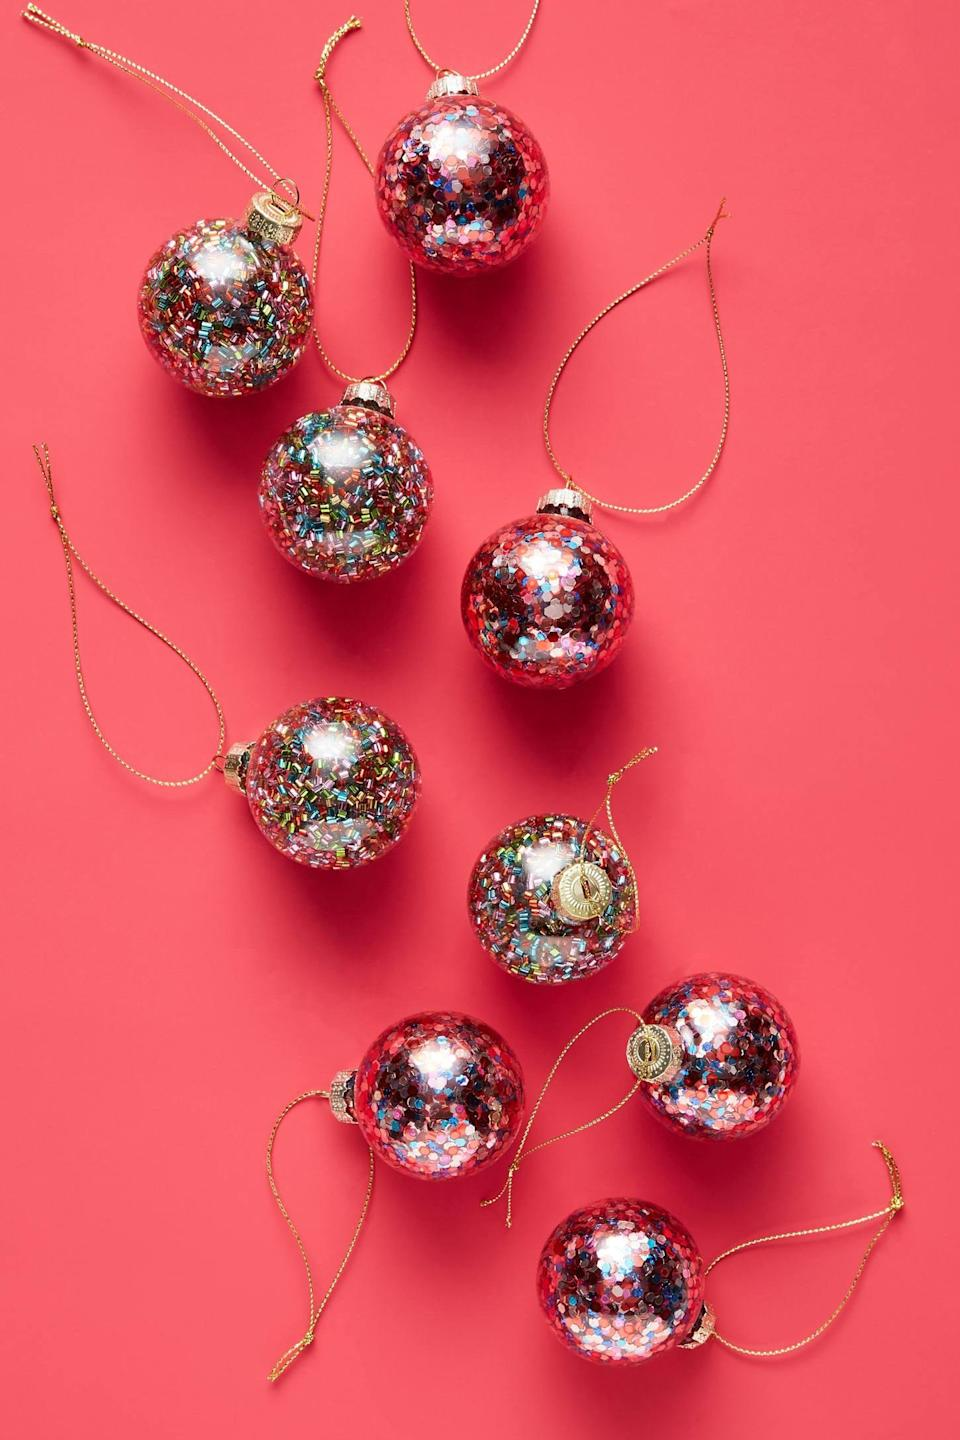 """<p>The <a href=""""https://www.popsugar.com/buy/Confetti-Ornaments-Set-Nine-490566?p_name=Confetti%20Ornaments%2C%20Set%20of%20Nine&retailer=anthropologie.com&pid=490566&price=20&evar1=casa%3Aus&evar9=46615300&evar98=https%3A%2F%2Fwww.popsugar.com%2Fhome%2Fphoto-gallery%2F46615300%2Fimage%2F46615437%2FConfetti-Ornaments-Set-Nine&list1=shopping%2Canthropologie%2Choliday%2Cchristmas%2Cchristmas%20decorations%2Choliday%20decor%2Chome%20shopping&prop13=mobile&pdata=1"""" rel=""""nofollow noopener"""" class=""""link rapid-noclick-resp"""" target=""""_blank"""" data-ylk=""""slk:Confetti Ornaments, Set of Nine"""">Confetti Ornaments, Set of Nine</a> ($20) are so fun and festive, you can't help but be in the holiday spirit. </p>"""